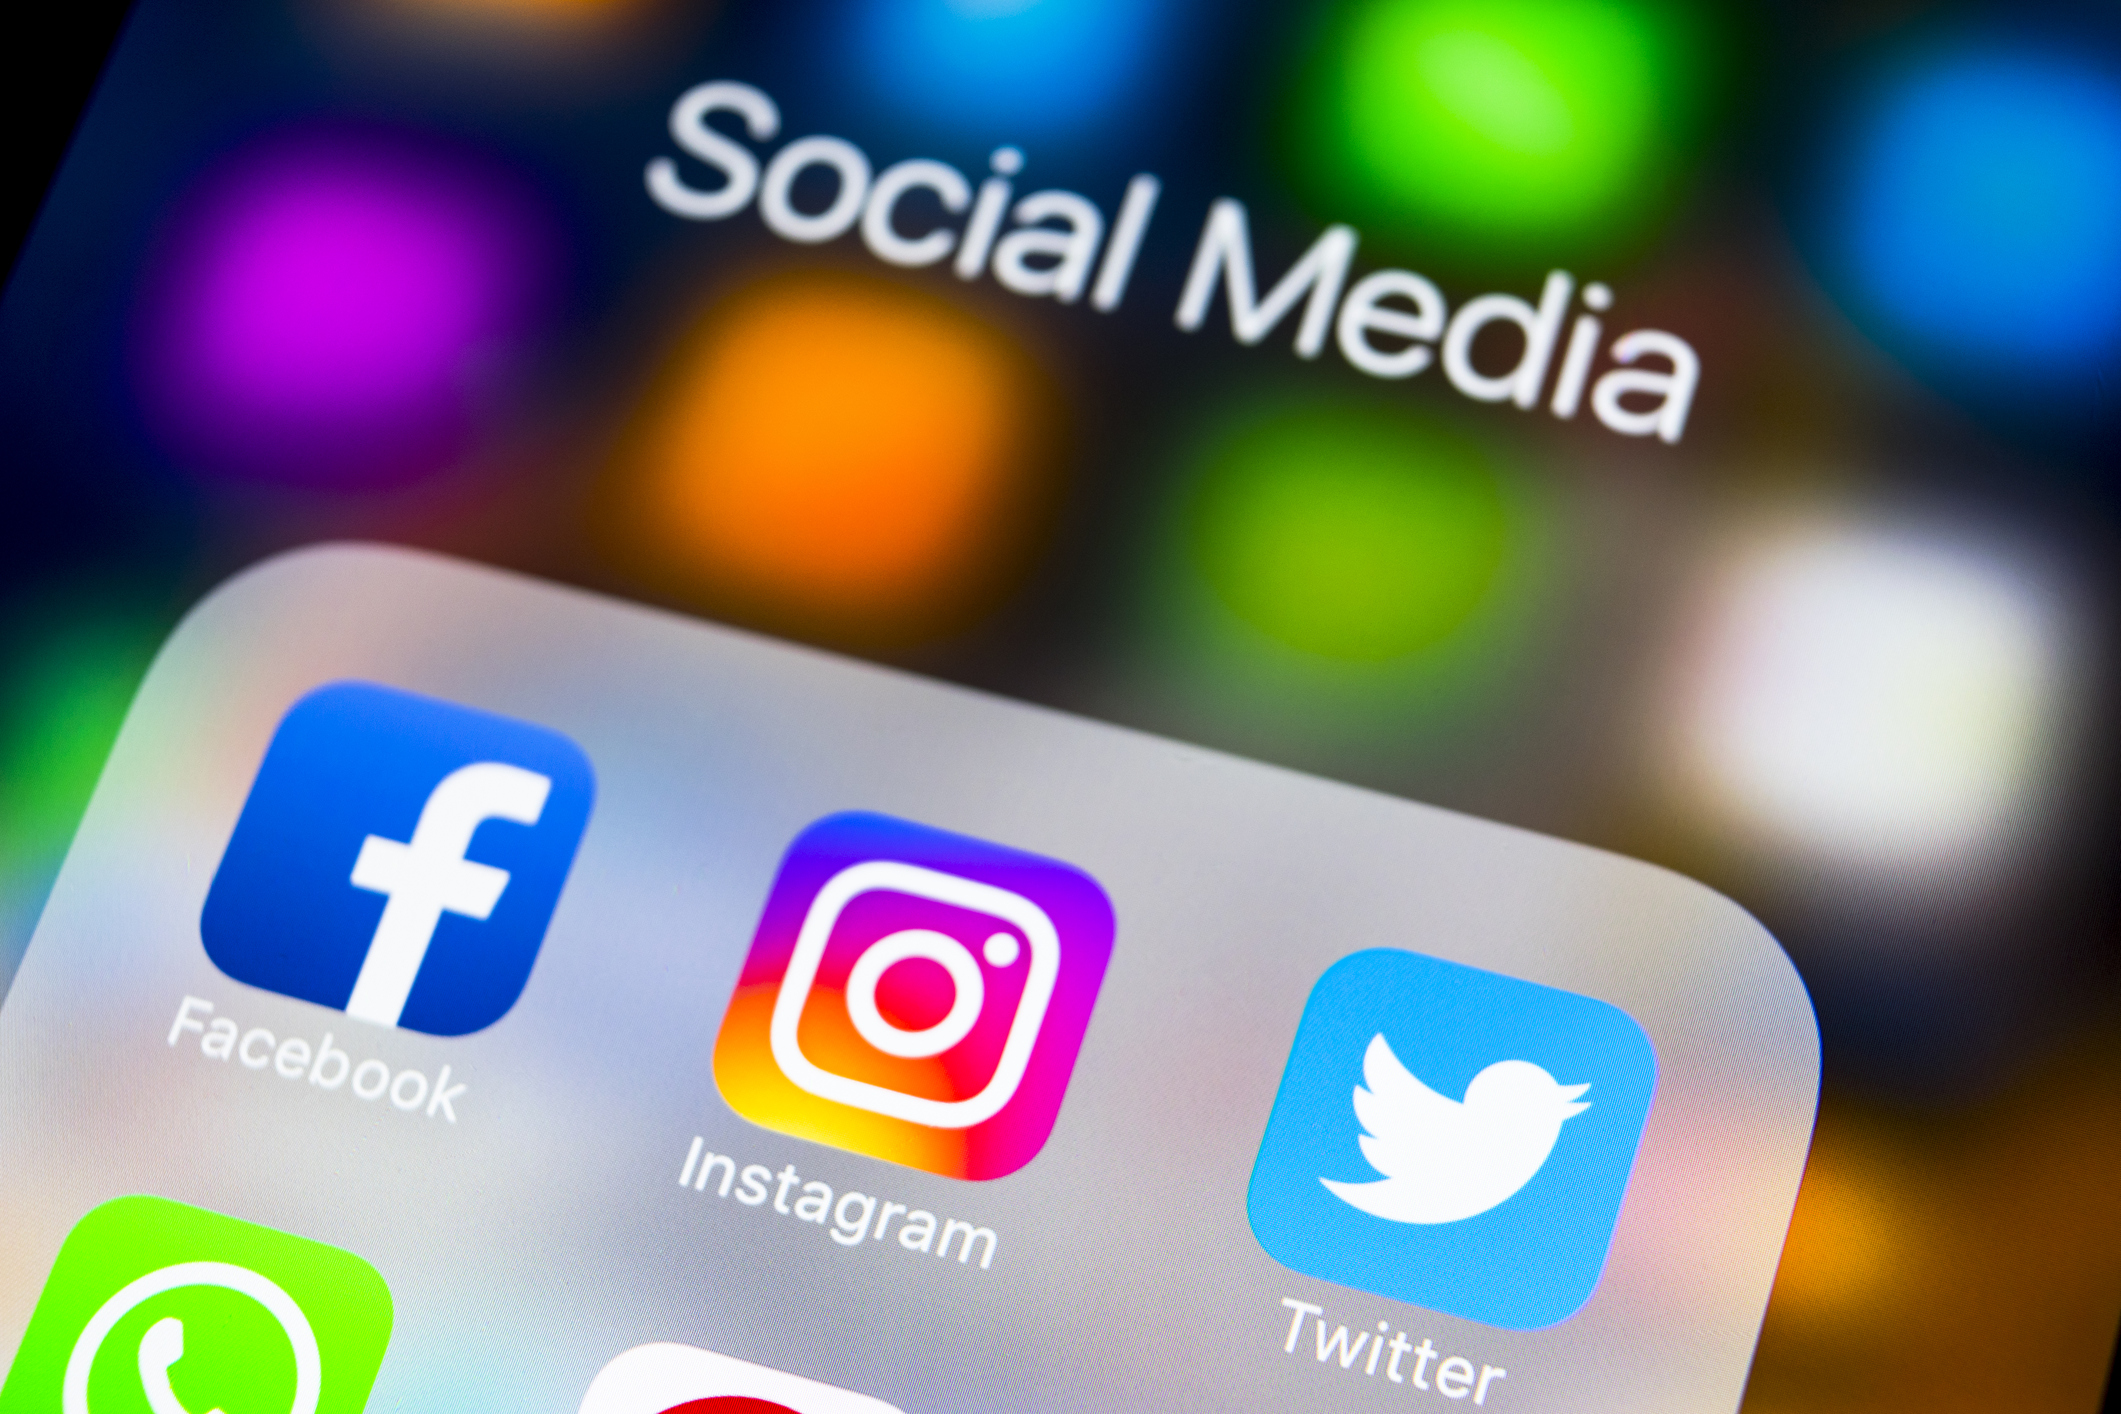 Canadians continue to flock to social media despite privacy concerns, research finds